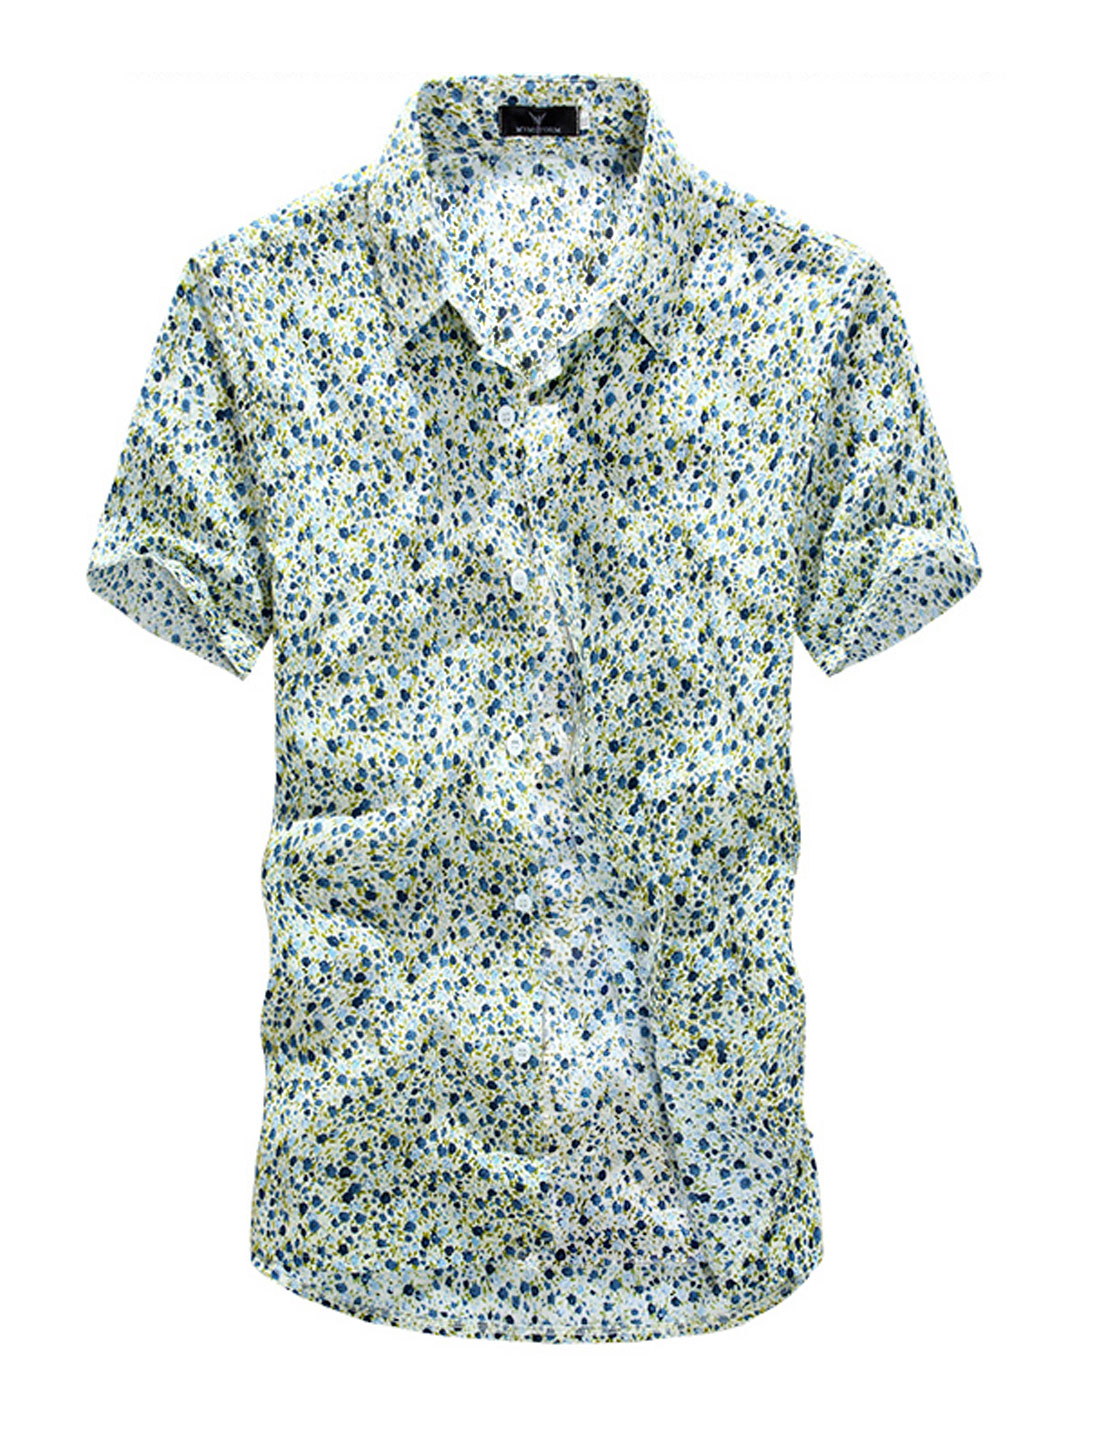 NEW Short Sleeve Floral Prints Button Down Shirt for Men Dark Blue M